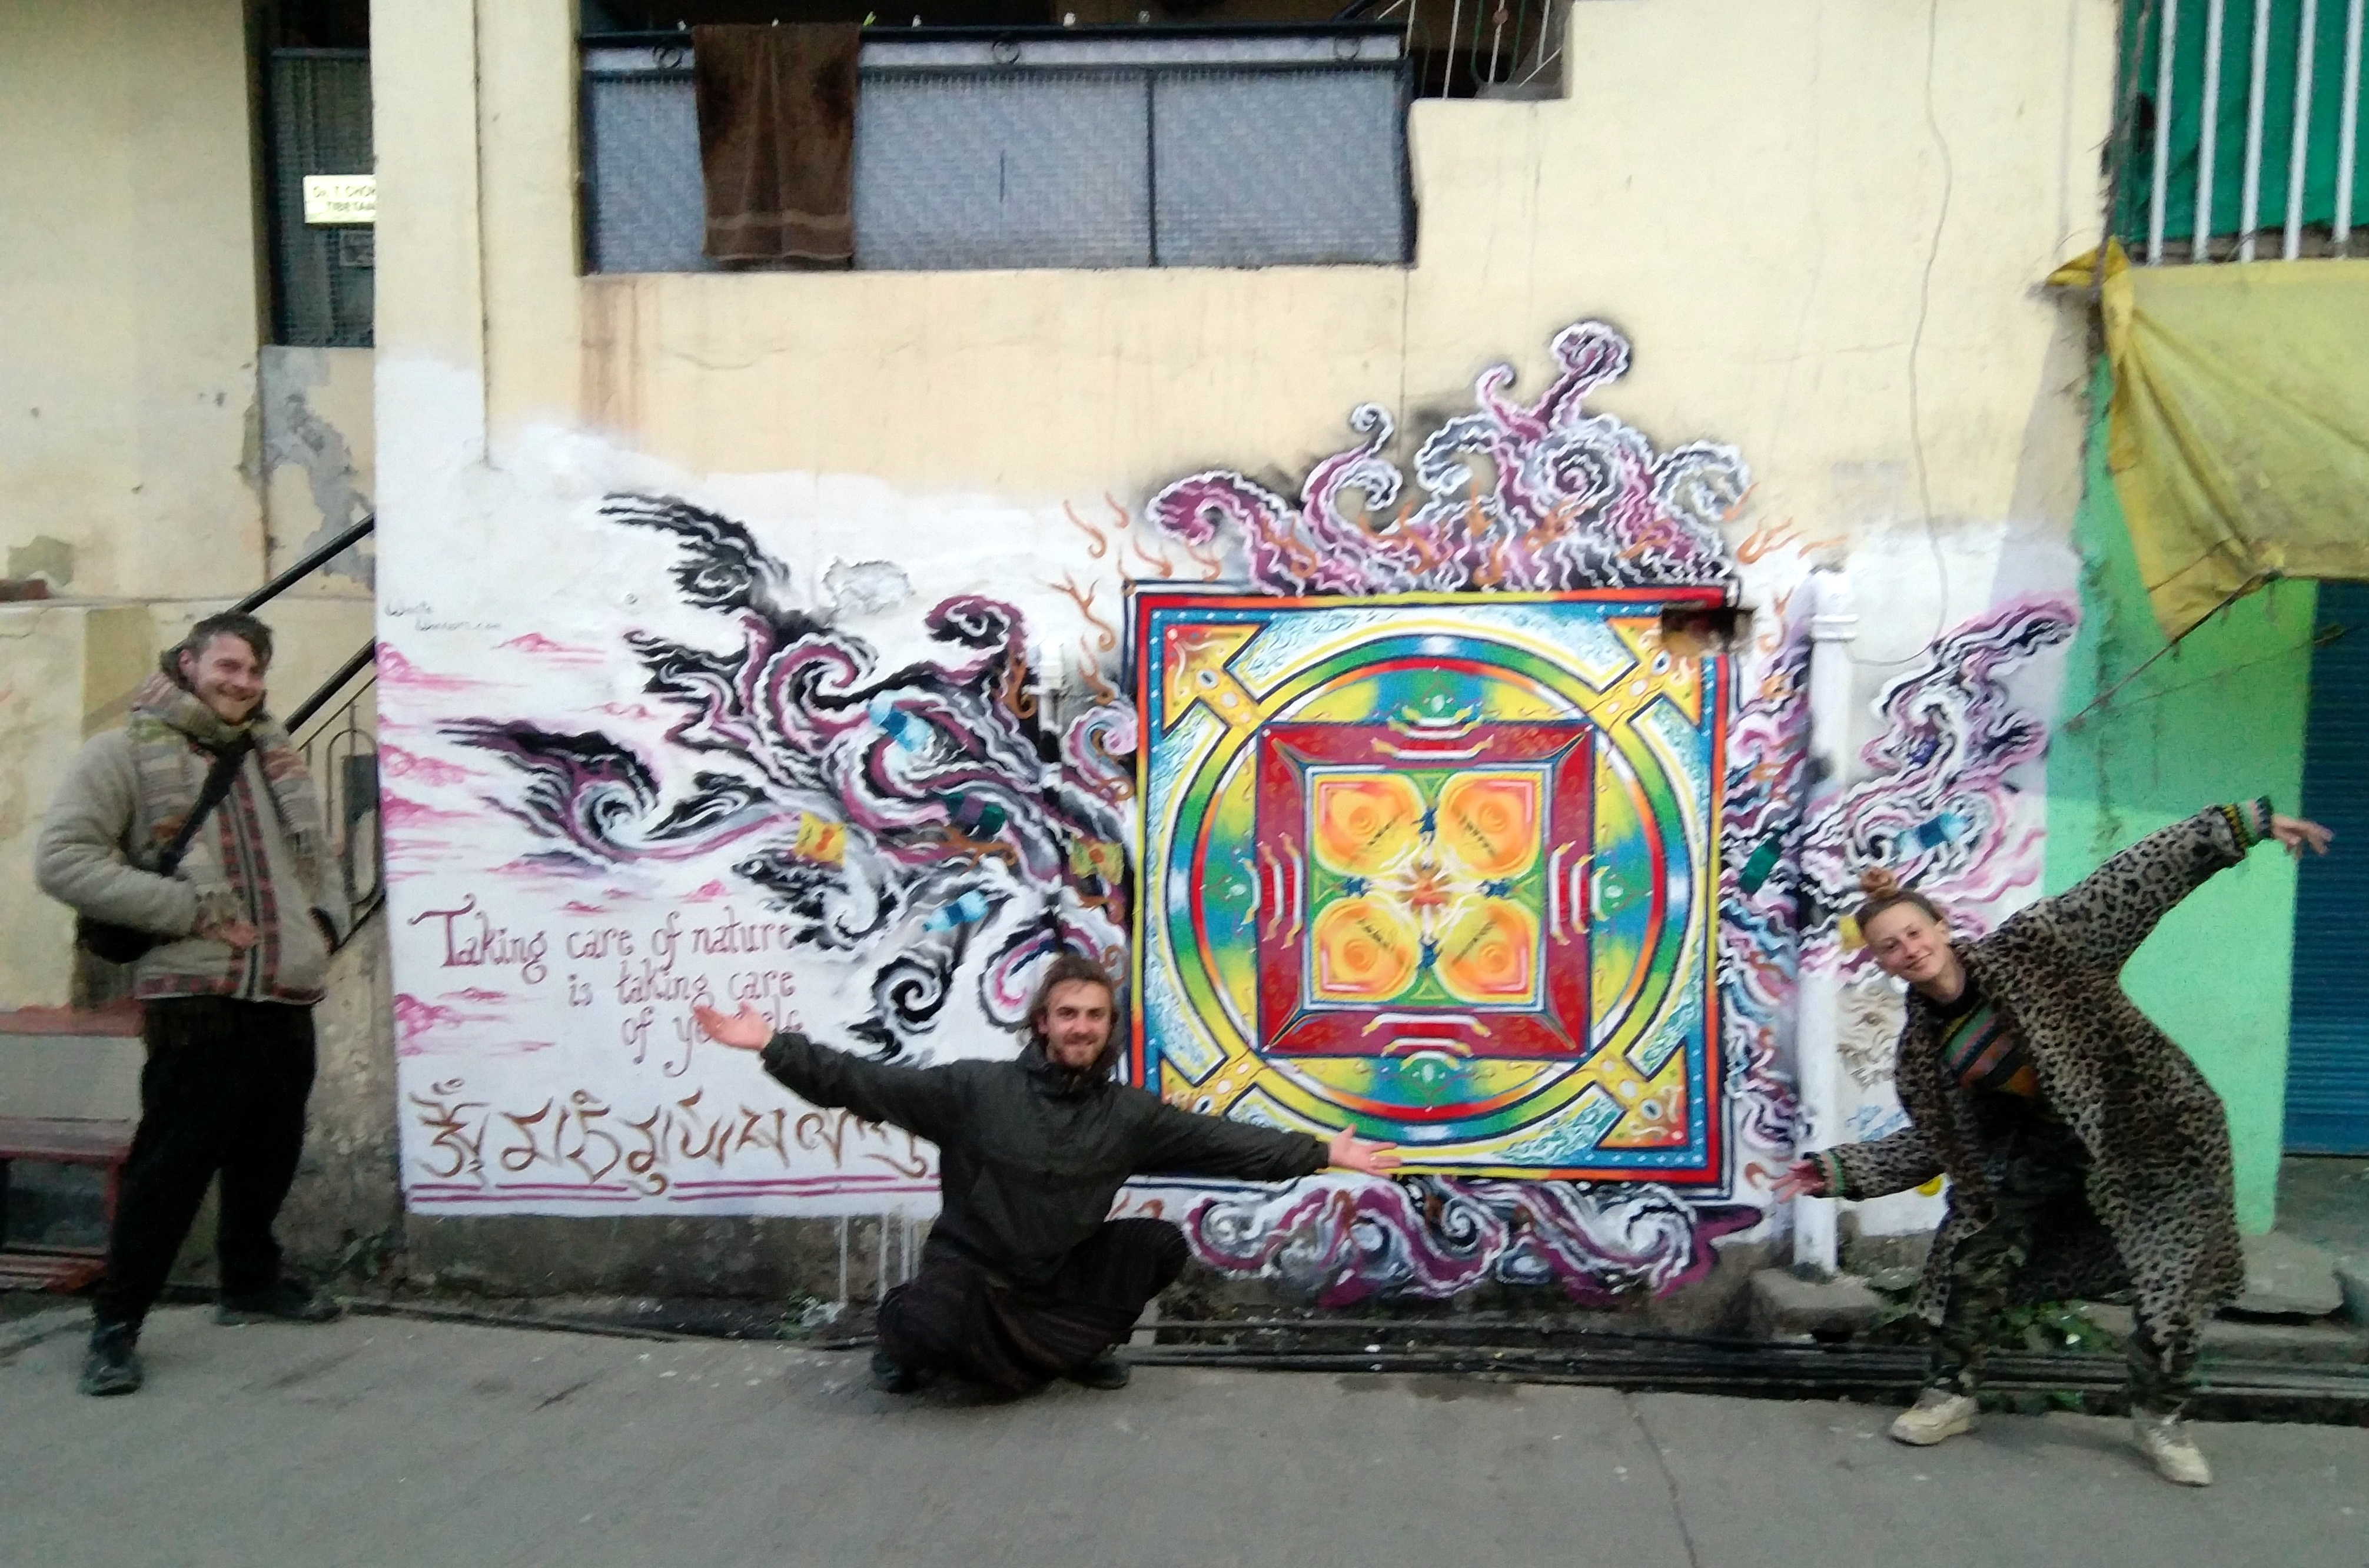 Waste Warriors McLeod Ganj mural by Joey Julia and Jack